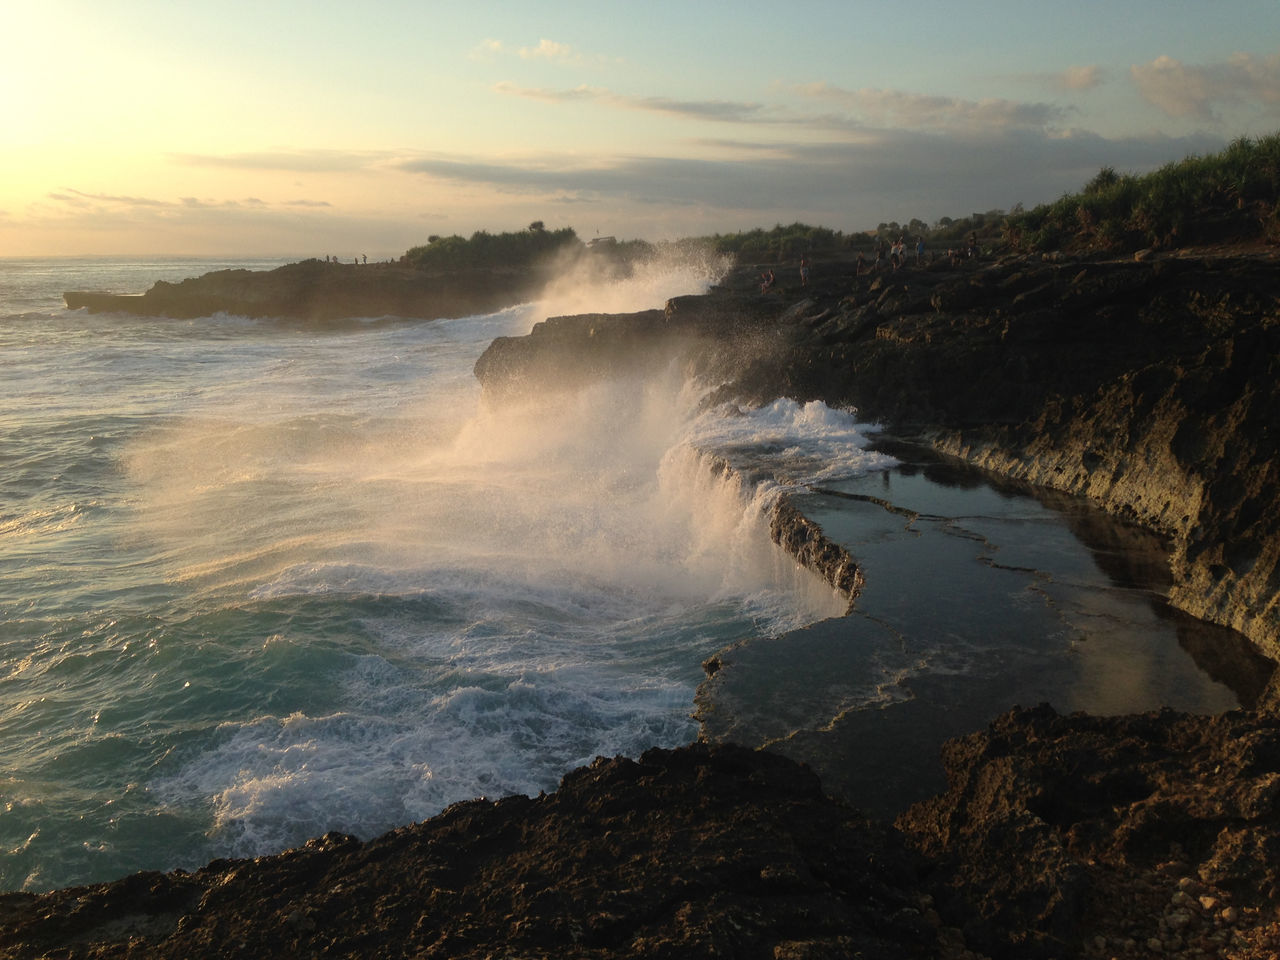 Crashing waves, ocean mist and waterfalls on the cliffs at Devil's Tears at sunset, Nusa Lembongan, Bali, Indonesia Bali Bali, Indonesia Beach Beach Photography Beautiful Beauty In Nature Breathtaking Cliffs Cliffside Devils Tears Evening Light Mist Motion Motion Capture Nature Photographer Nusalembongan Ocean Ocean Photography Power In Nature Splashing Splashing Waves Stunning Sunset Waterfalls Waves